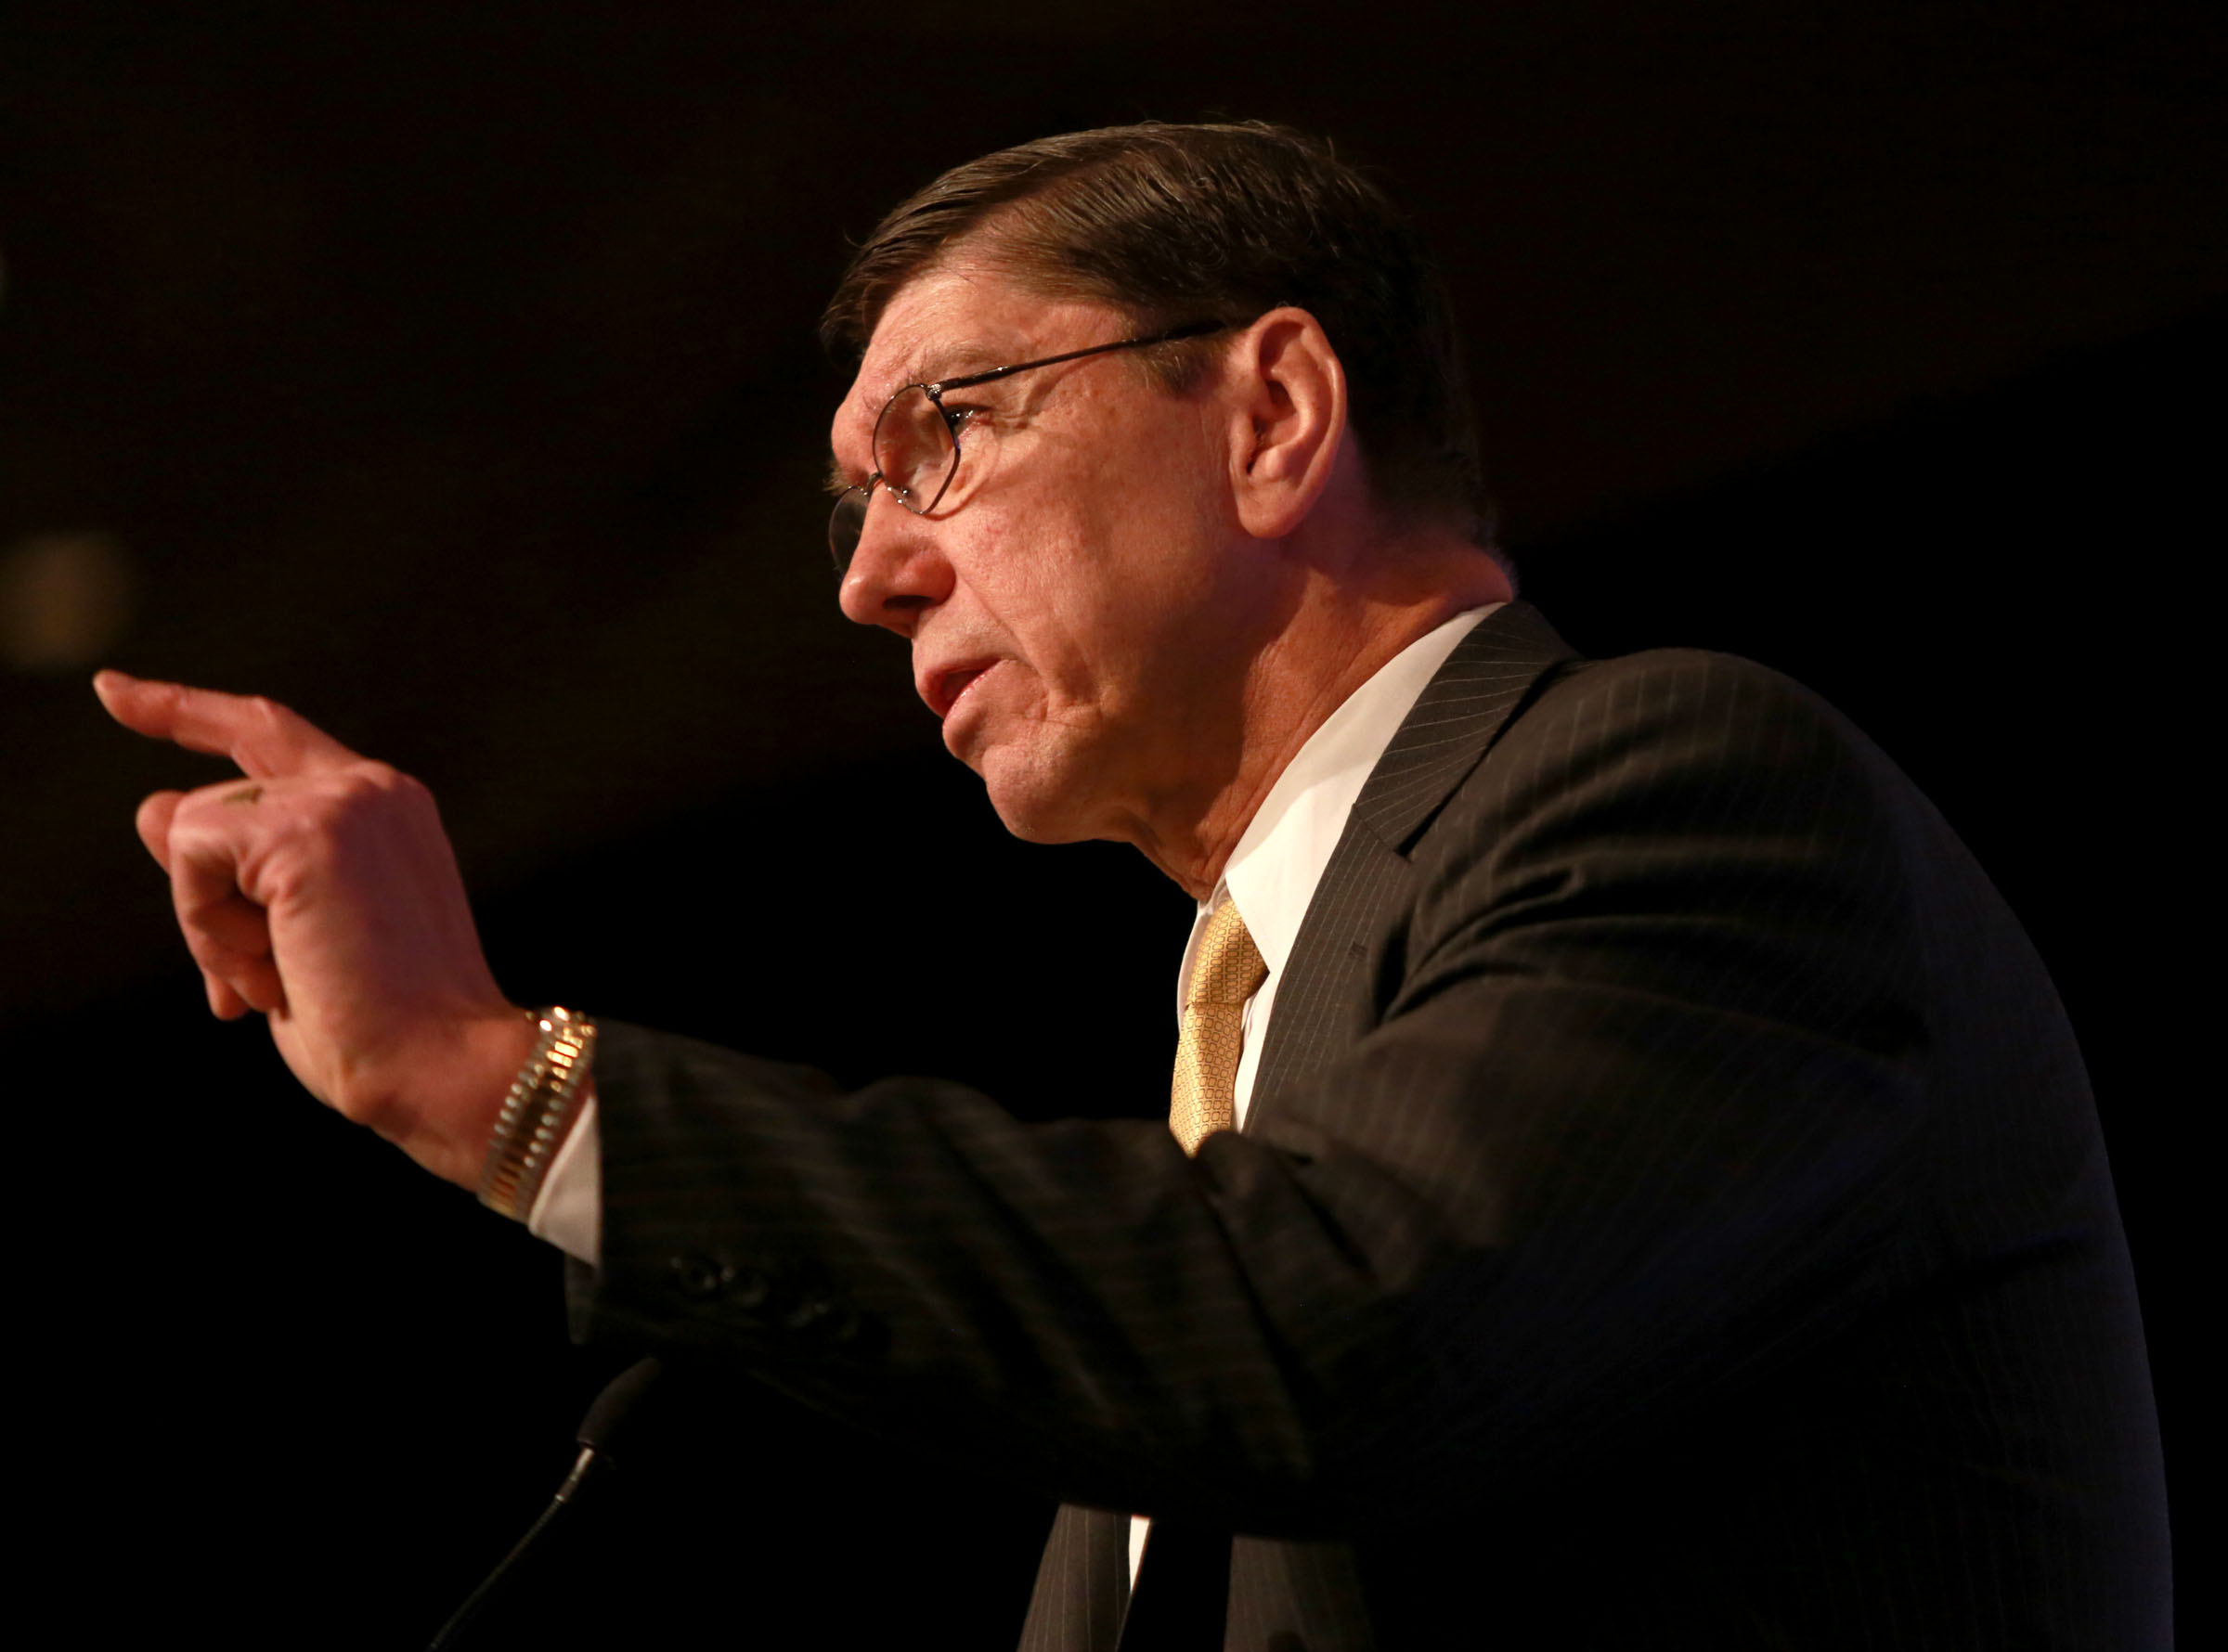 FILE - Clayton Christensen gives his keynote speech at the Governor's Utah Economic Summit at the Grand America Hotel in Salt Lake City on Thursday, April 3, 2014. Christensen died Jan. 23 at the age of 67.